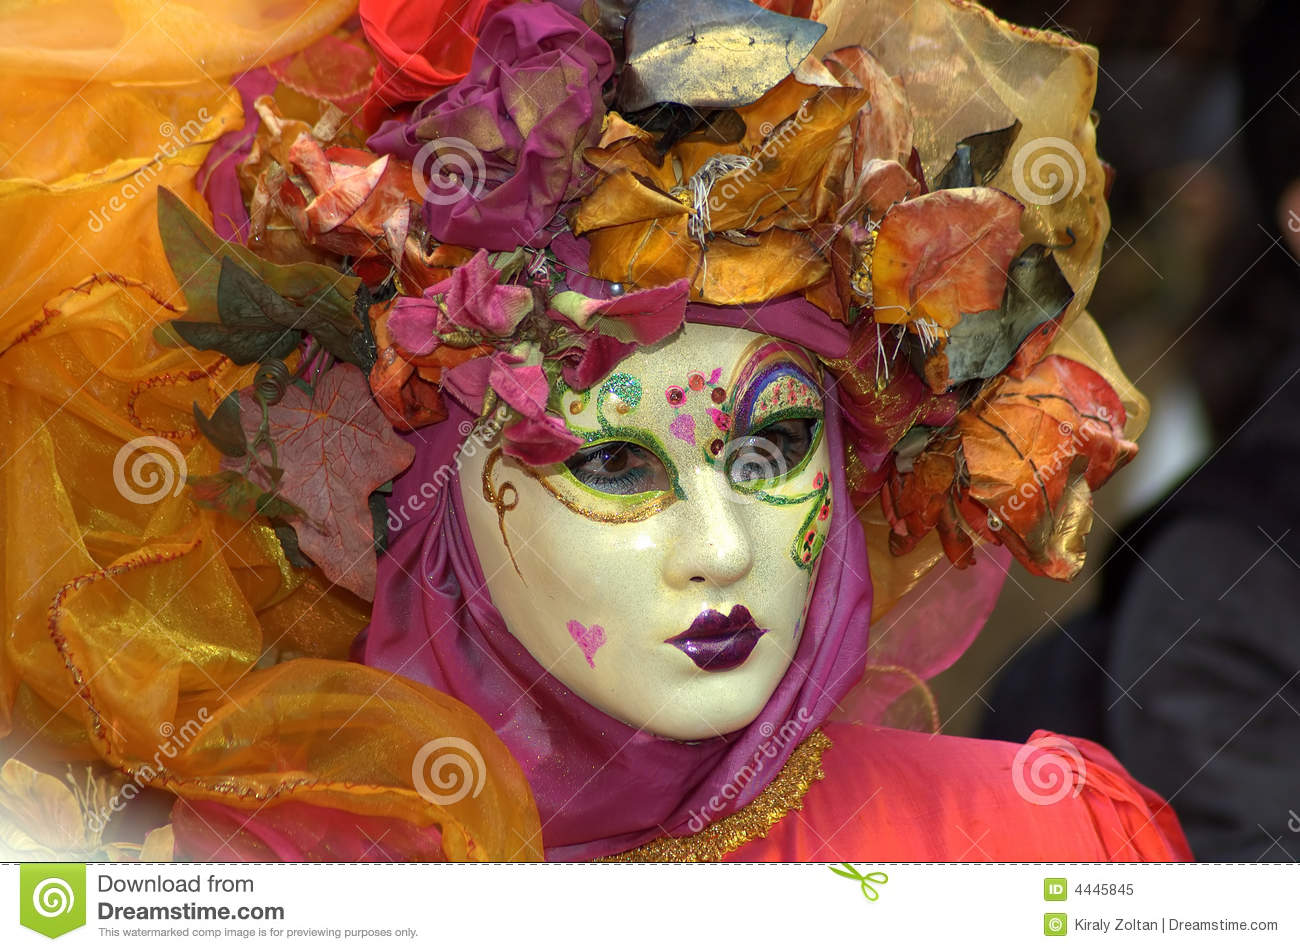 Woman in Costume & Mask